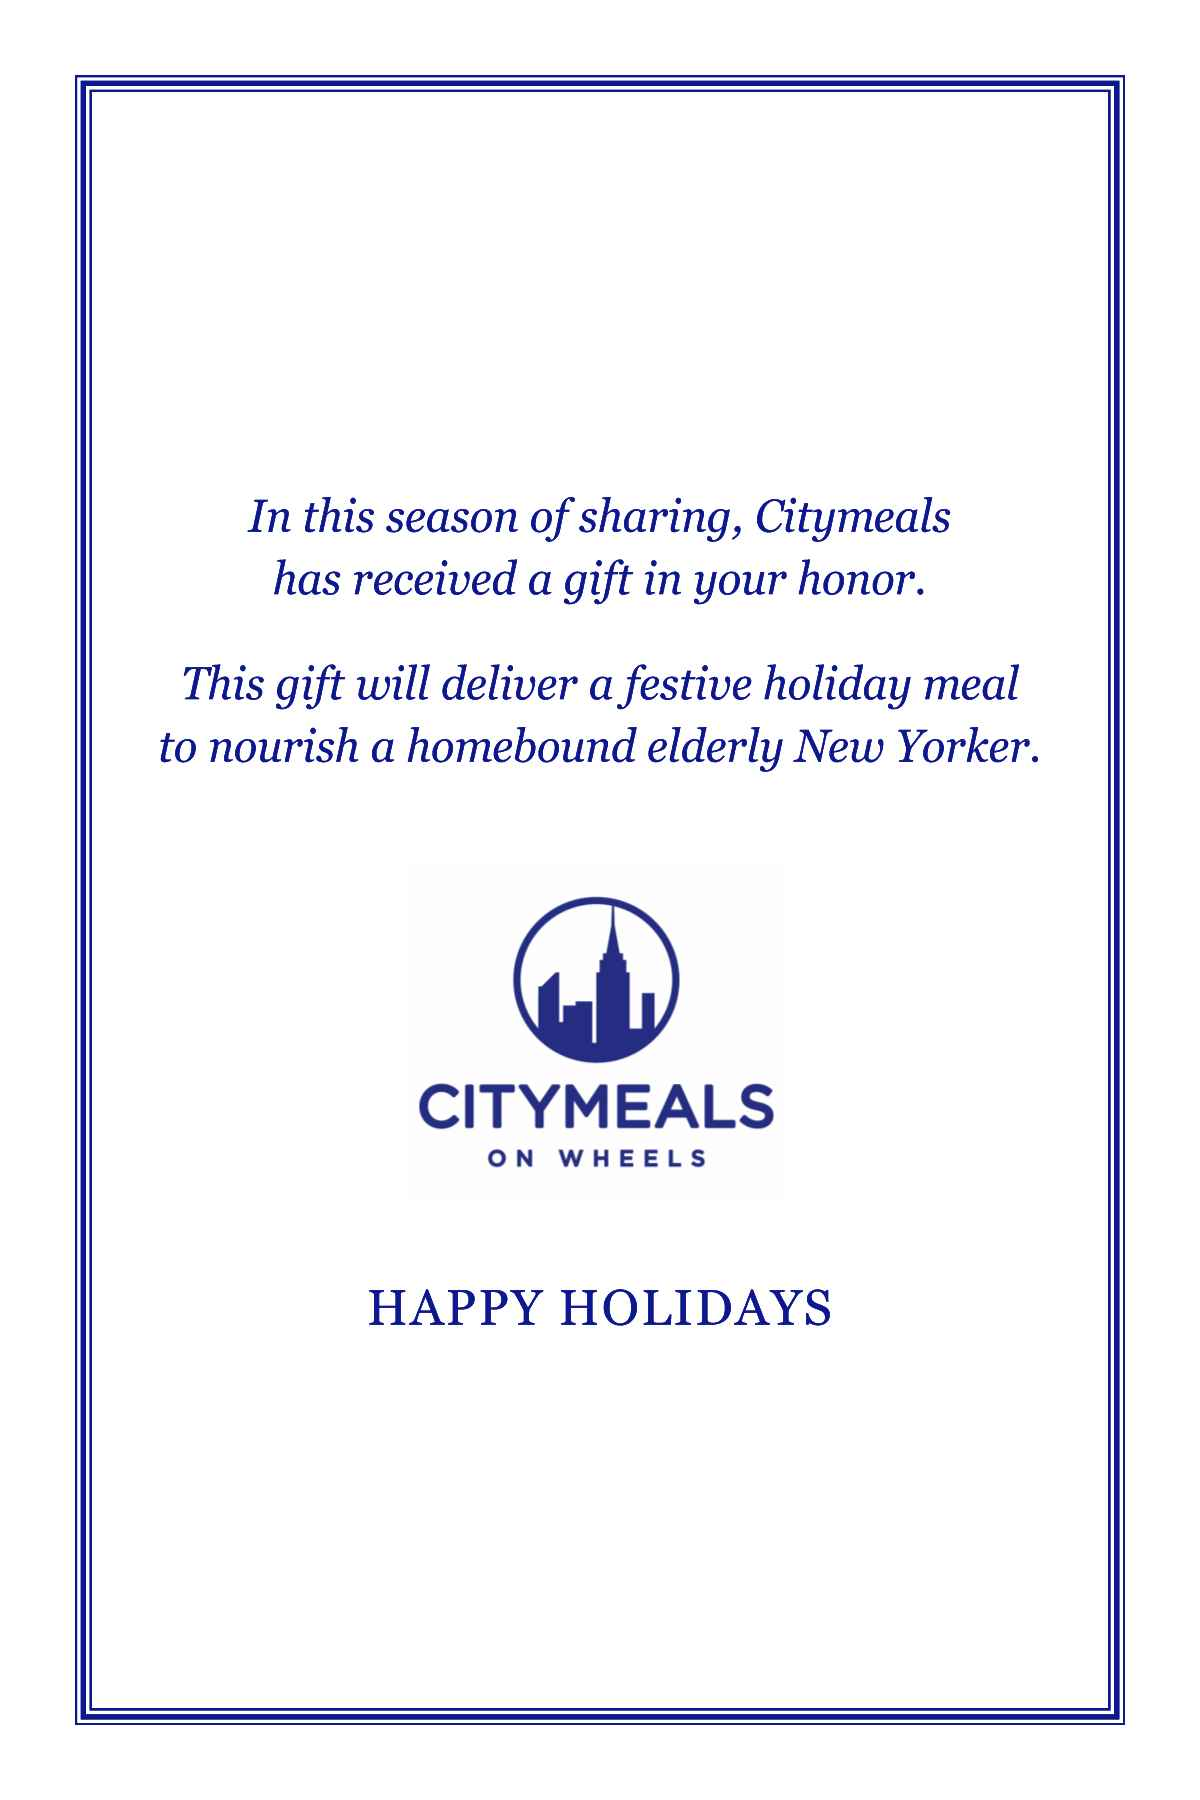 Holiday Cards | Citymeals on Wheels